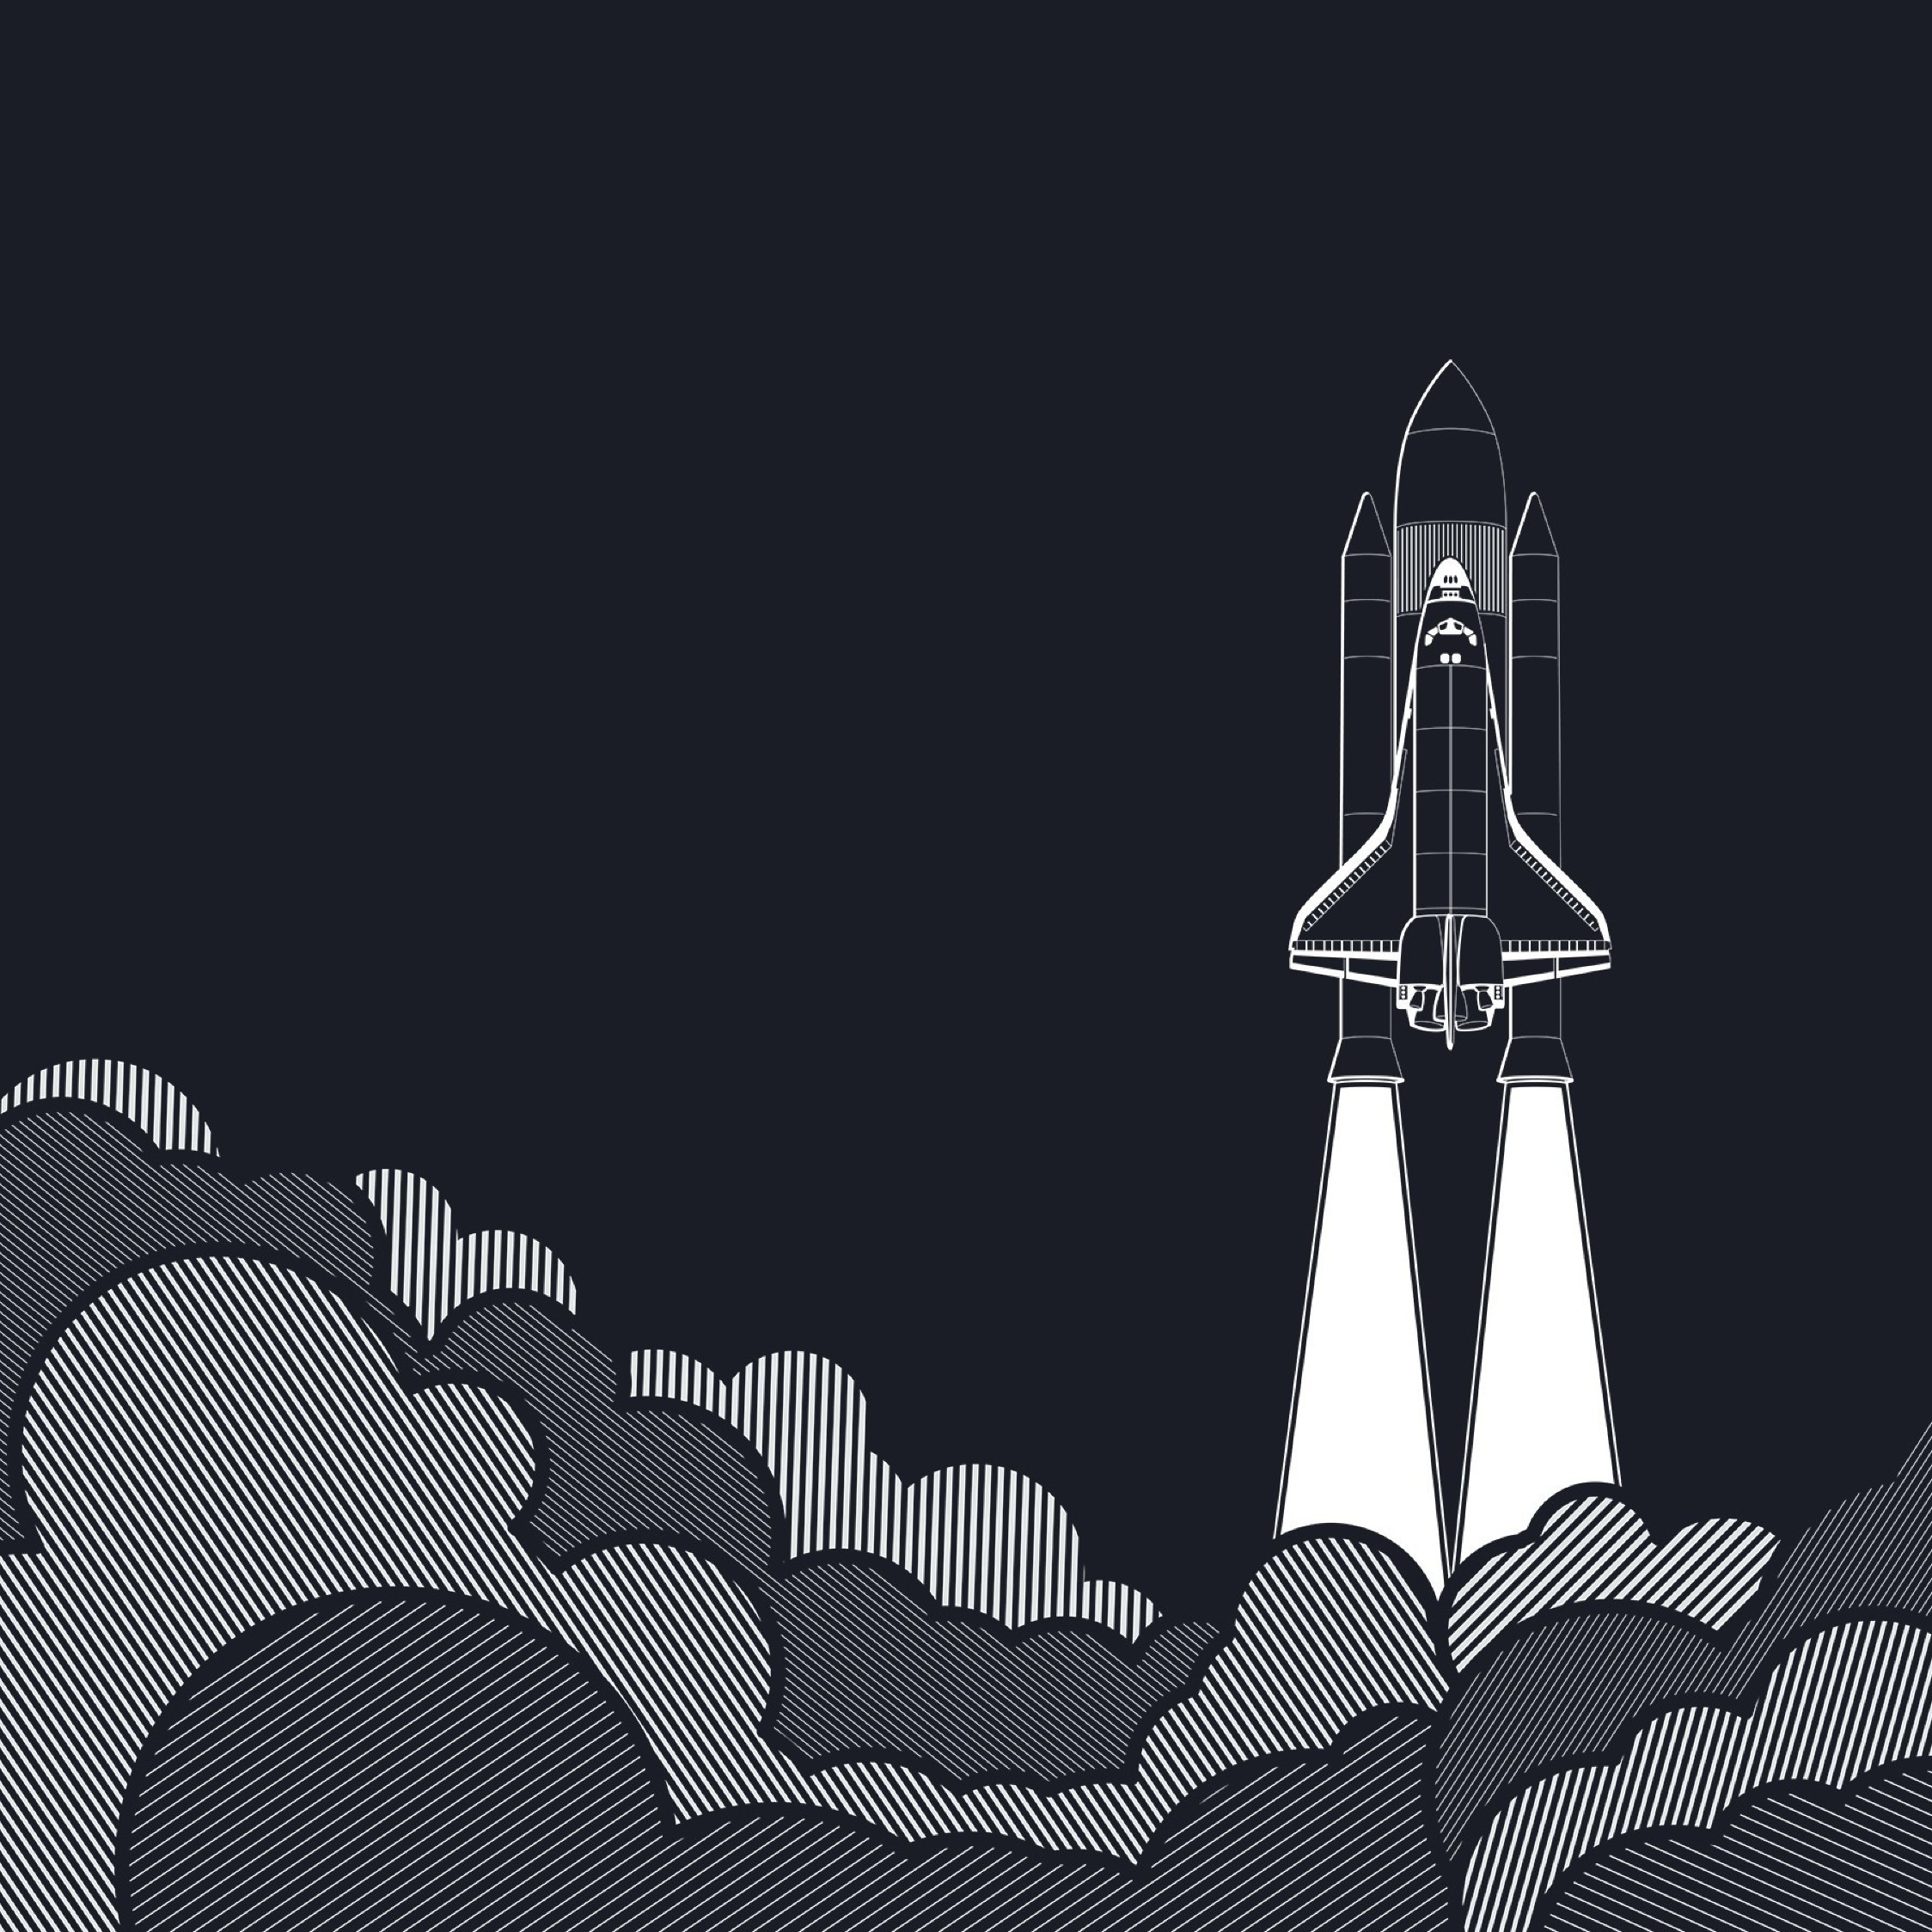 Space Shuttle Rocket Startup Concepts Minimalism, Full HD